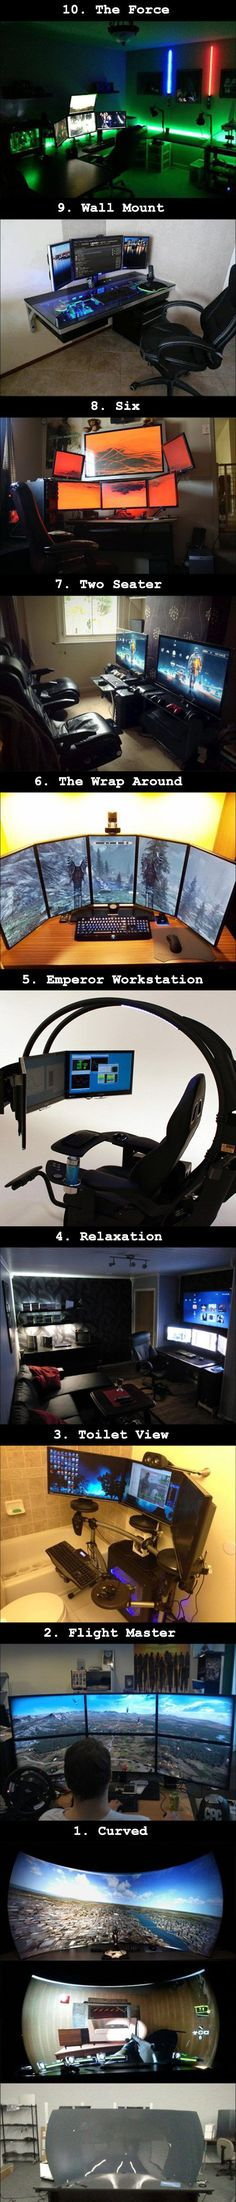 10 Awesome Computer Setups Any Geek Would Love - TechEBlog Check out the…